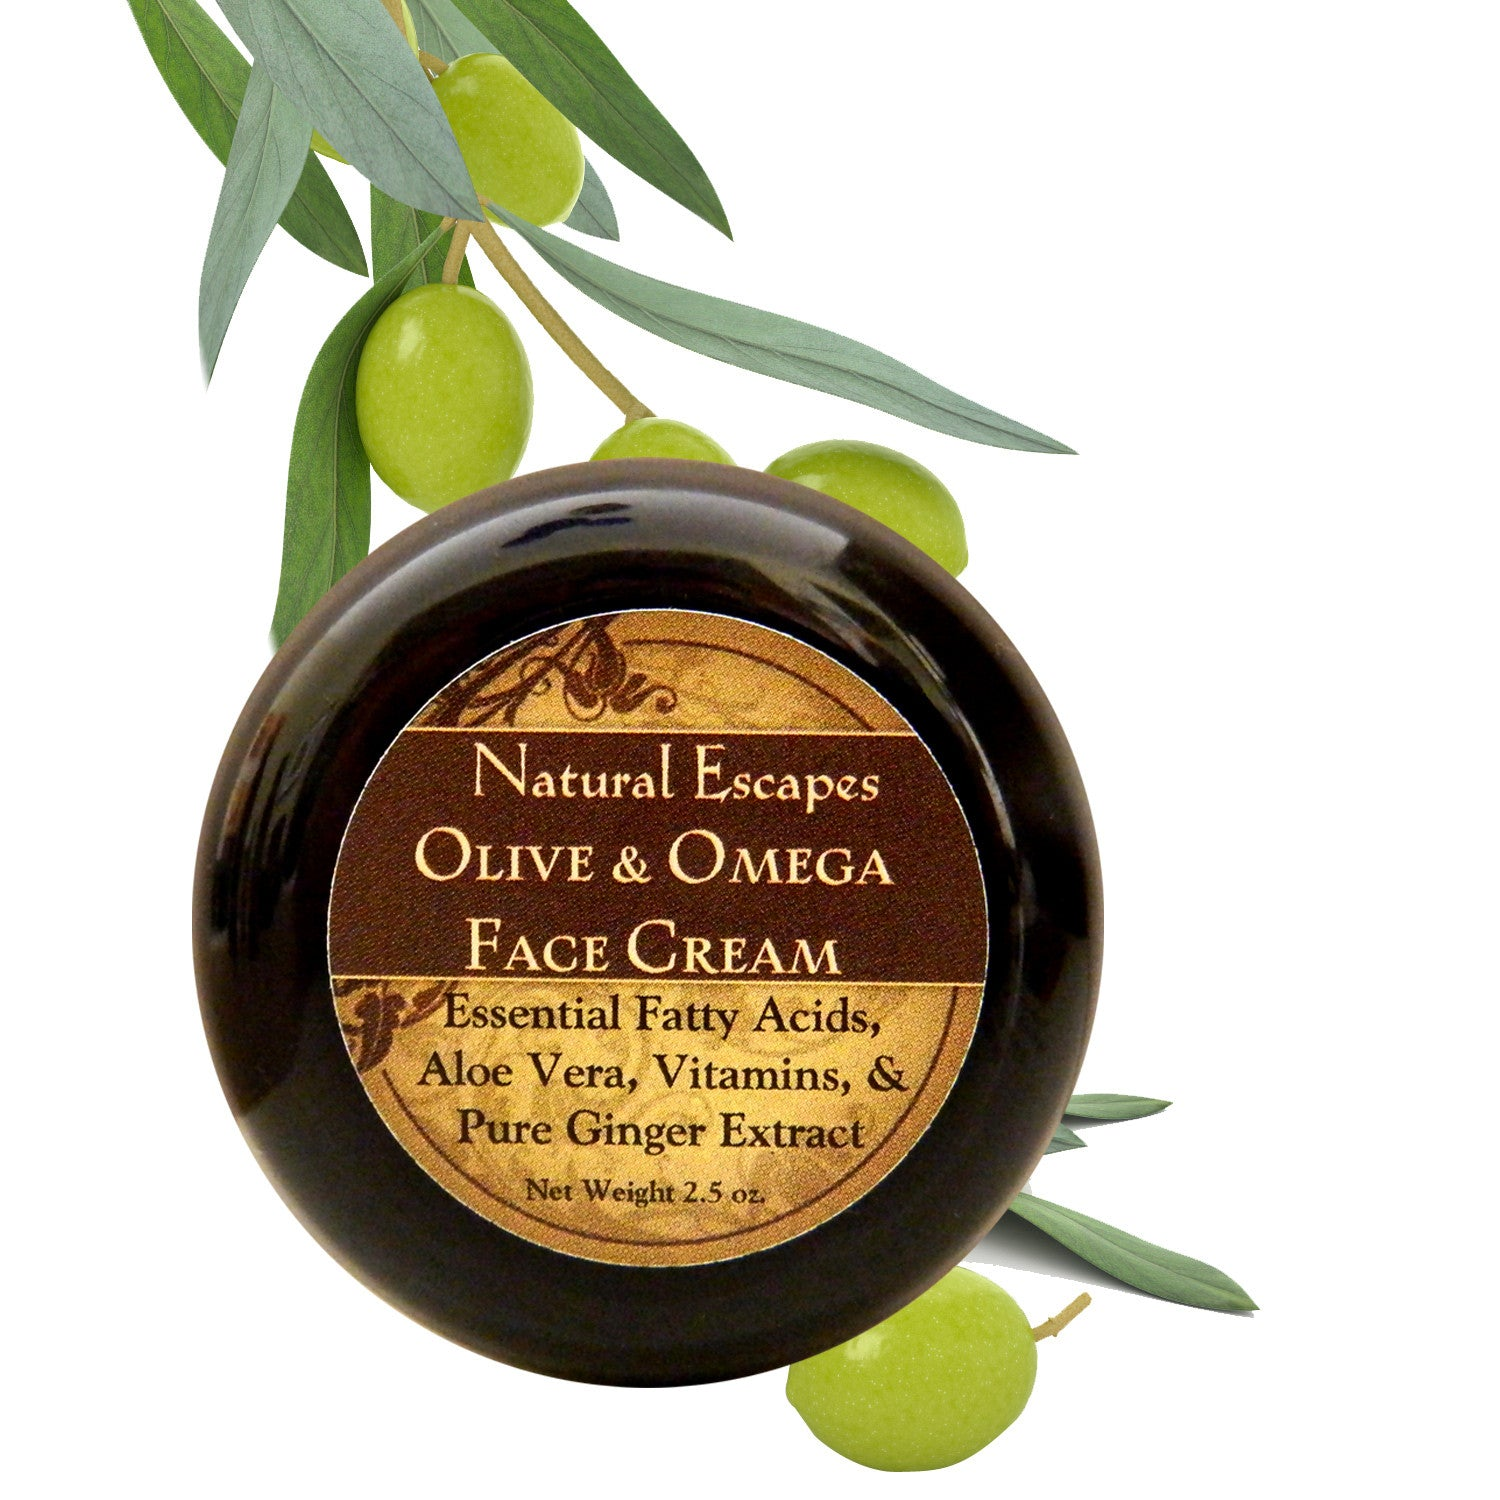 Olive & Omega Face Cream | Anti-Aging Face Cream for Extra Dry Skin, Fine Lines & Wrinkles, Age Spots & More